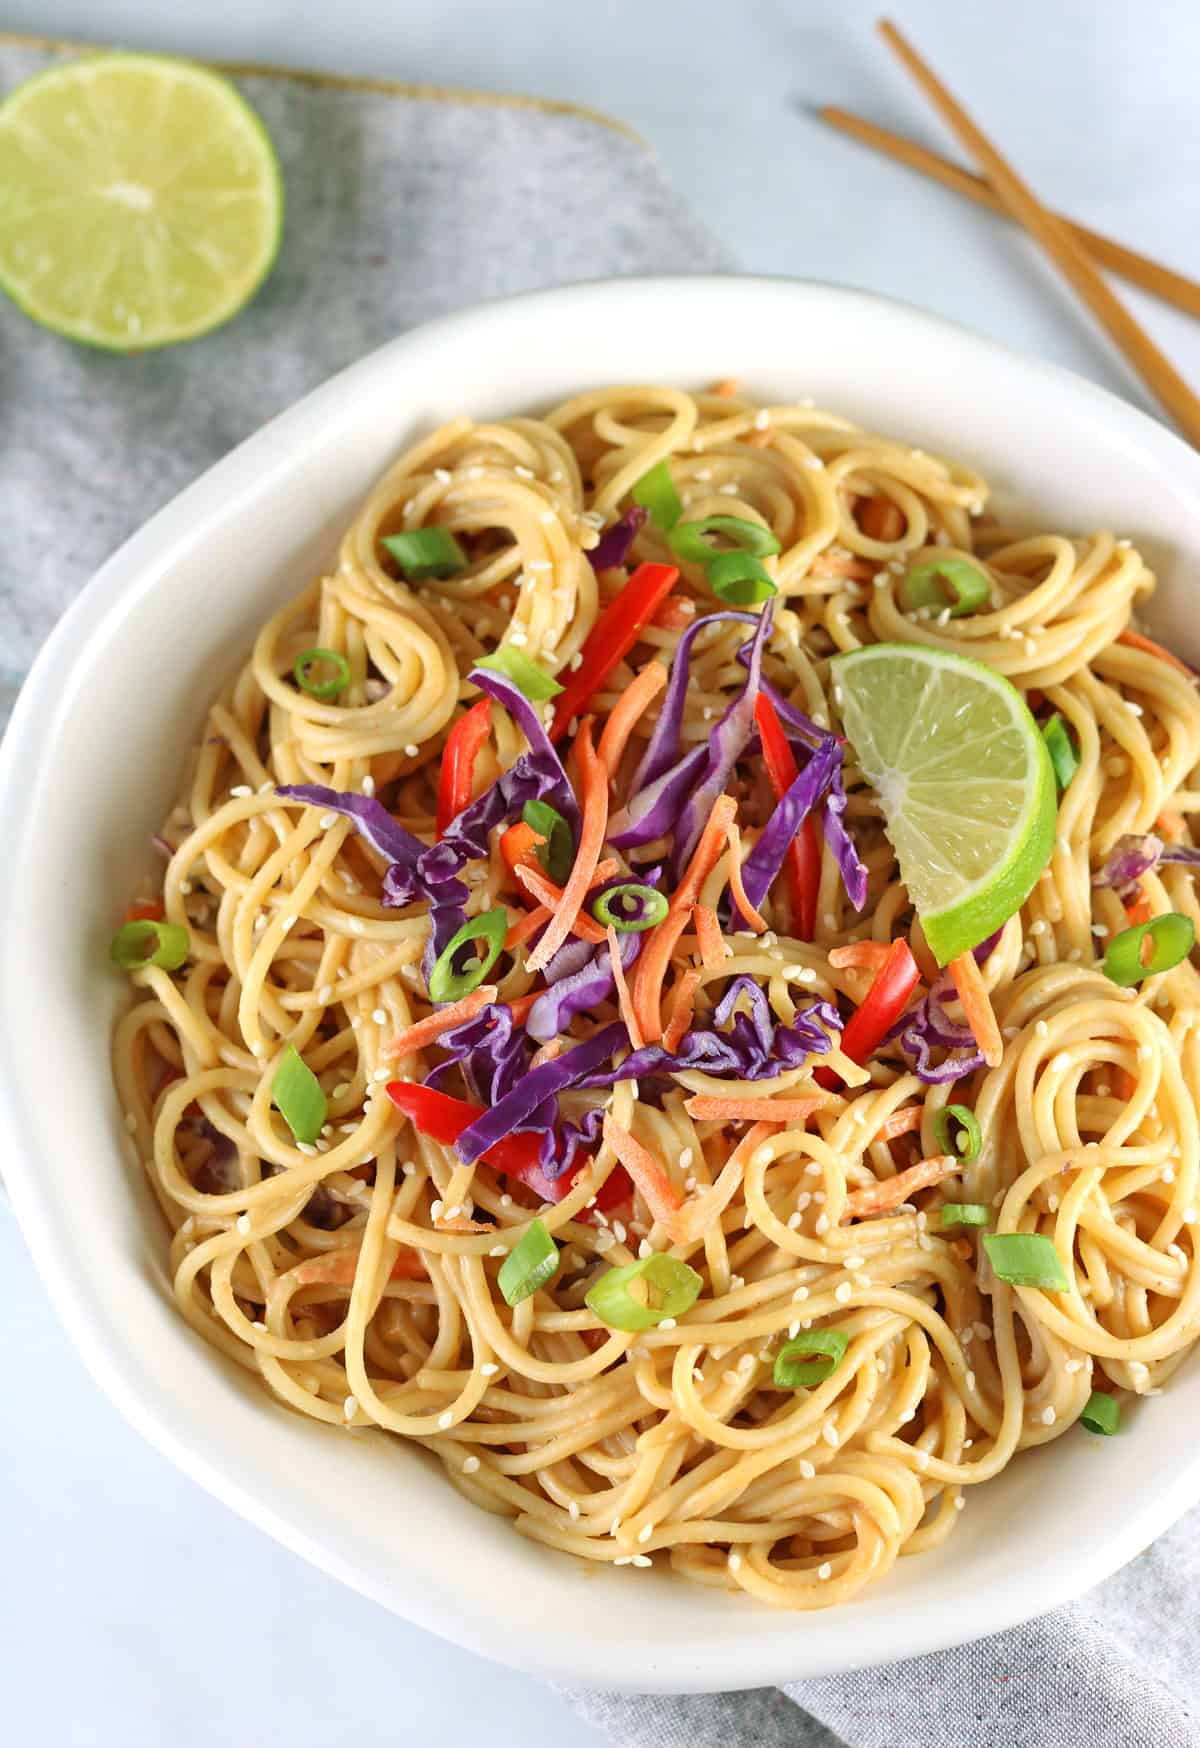 peanut noodles with lime and chopsticks on grey napkin